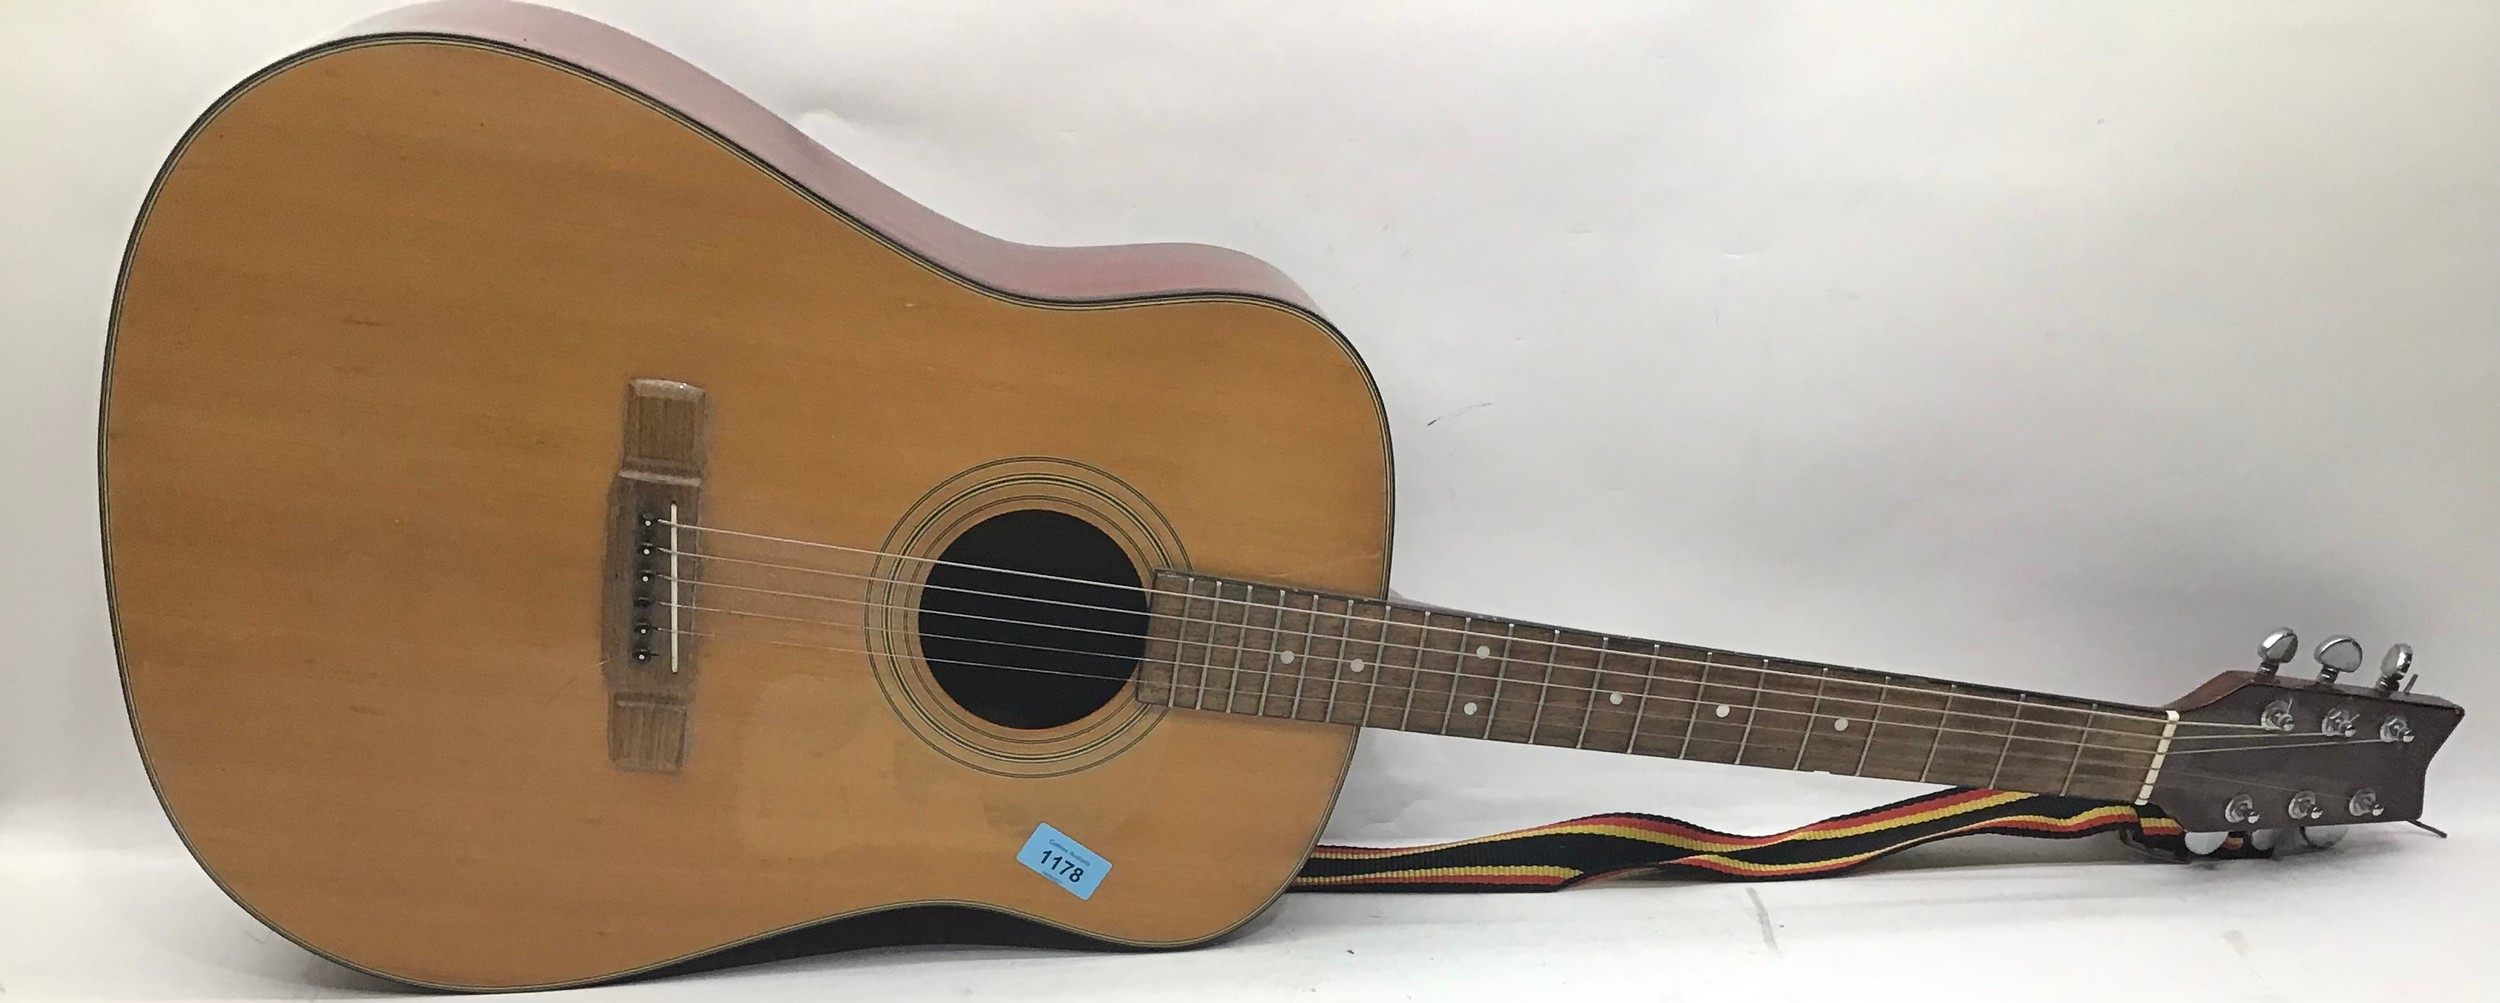 WASHBURN ACOUSTIC GUITAR. This 6 stringed guitar is finished in rosewood and comes with a strap.